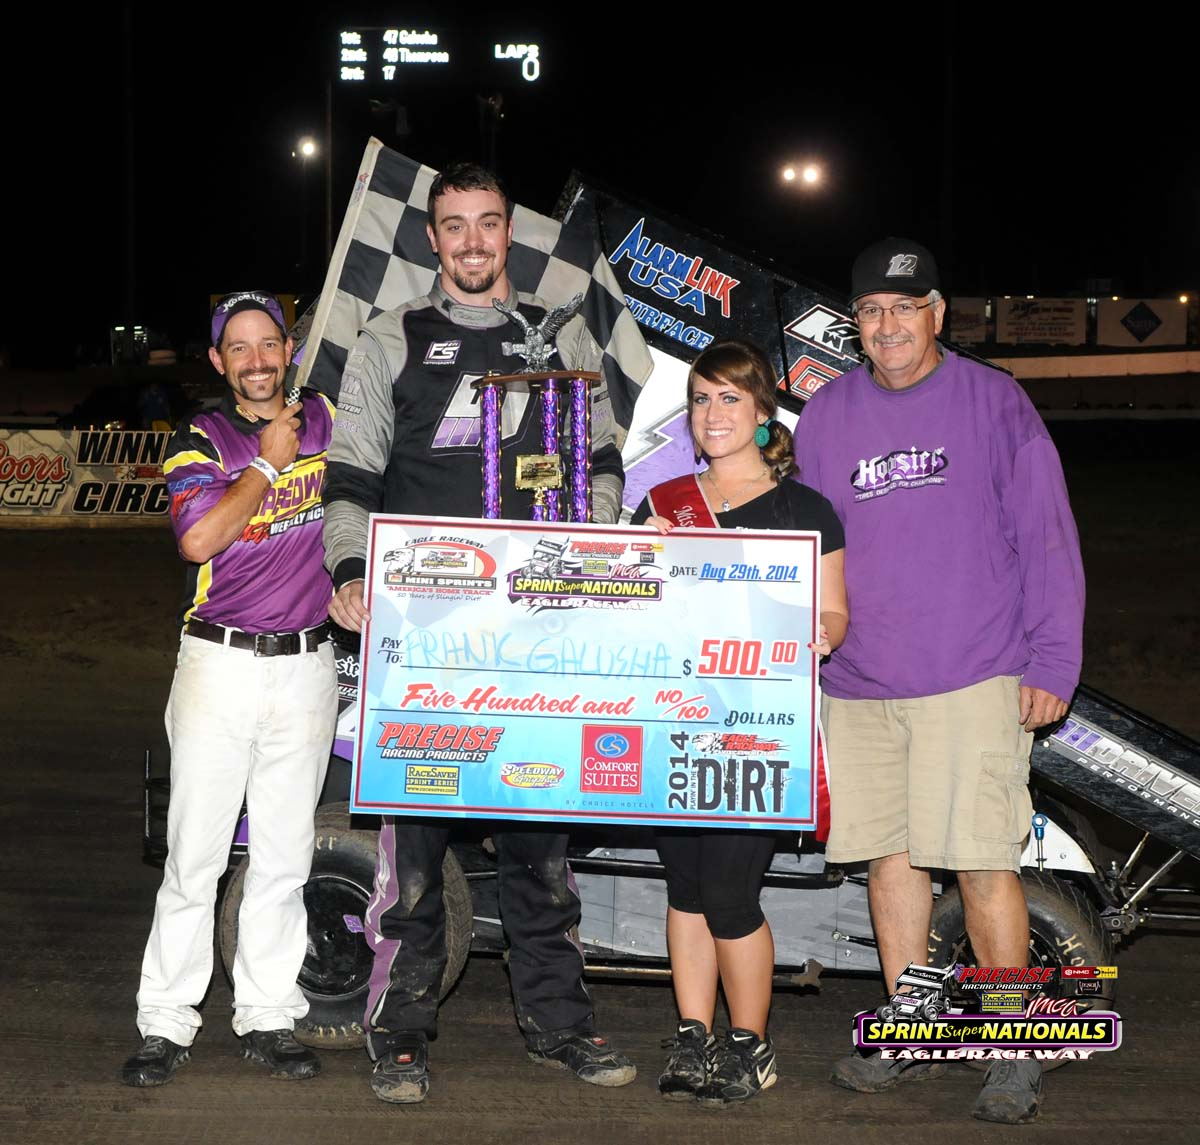 Eagle-08-29-14-717-Frank-Galusha-with-Miss-Nebraska-Cup-Elle-Patocka-and-flagman-Billy-Lloyd-and-father-Ron-JoeOrthPhotos